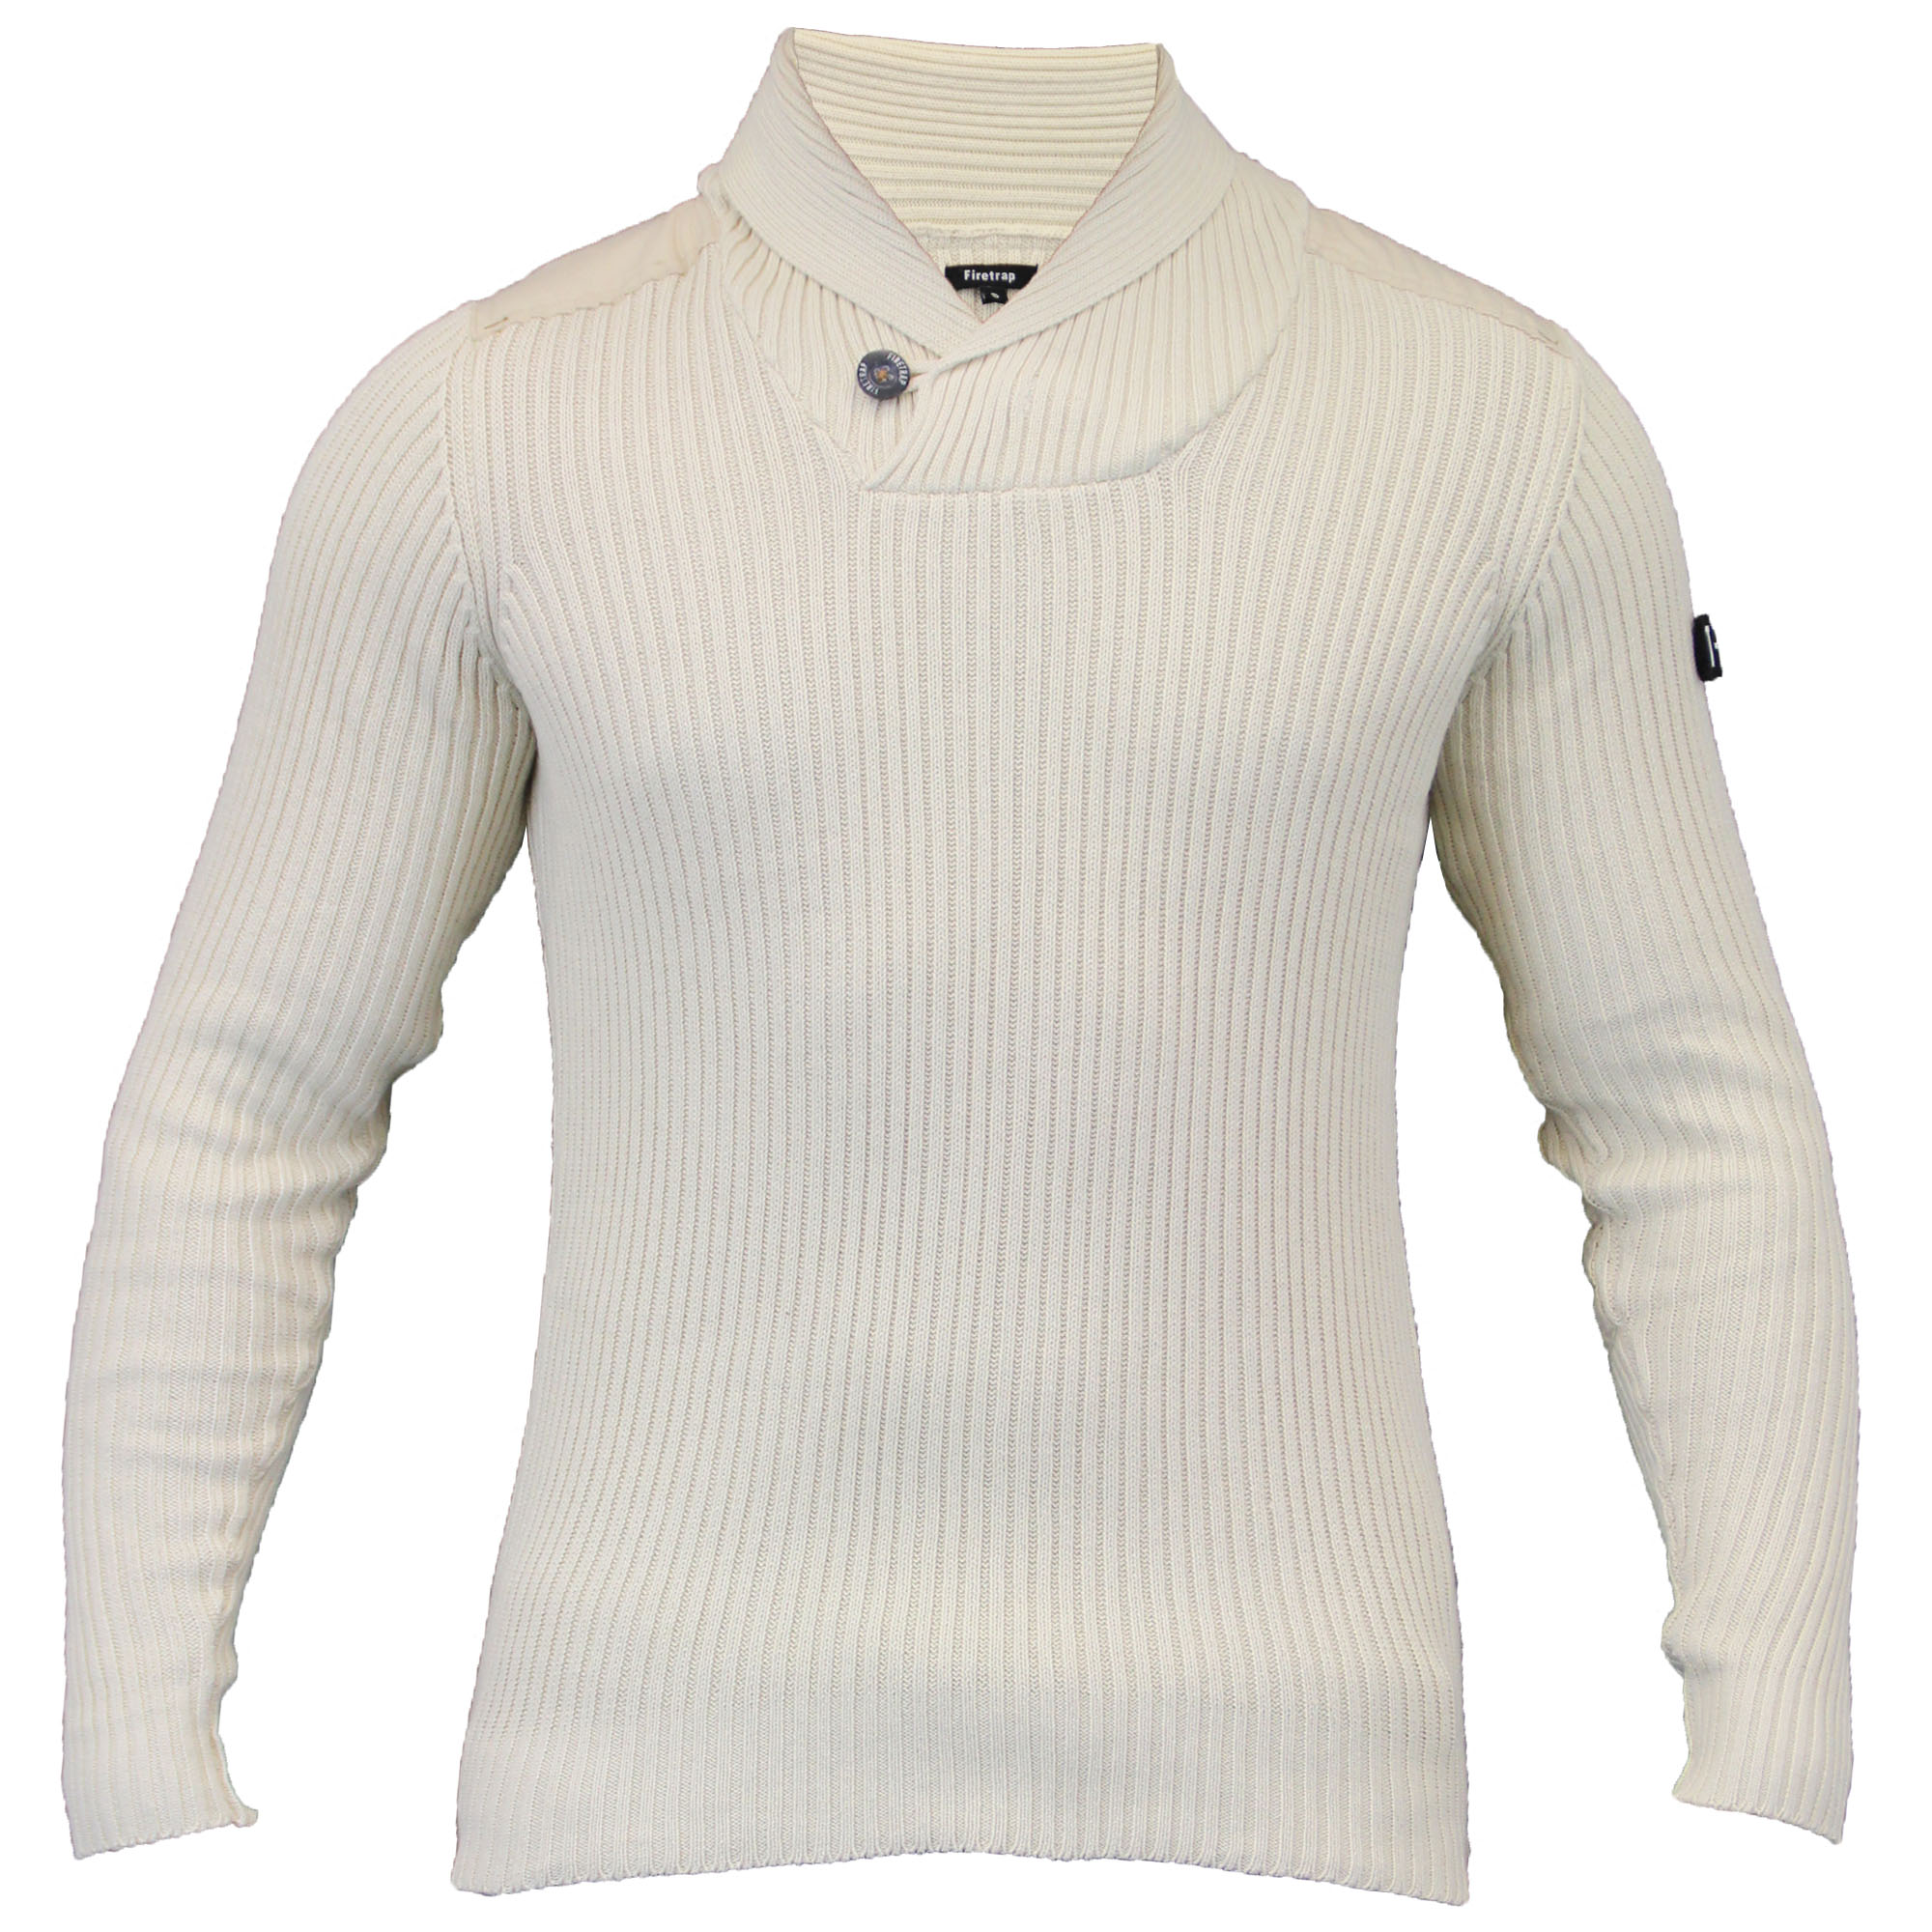 mens jumpers mens-jumpers-firetrap-knitted-top-sweater-pullover-ribbed- PFHAJQA